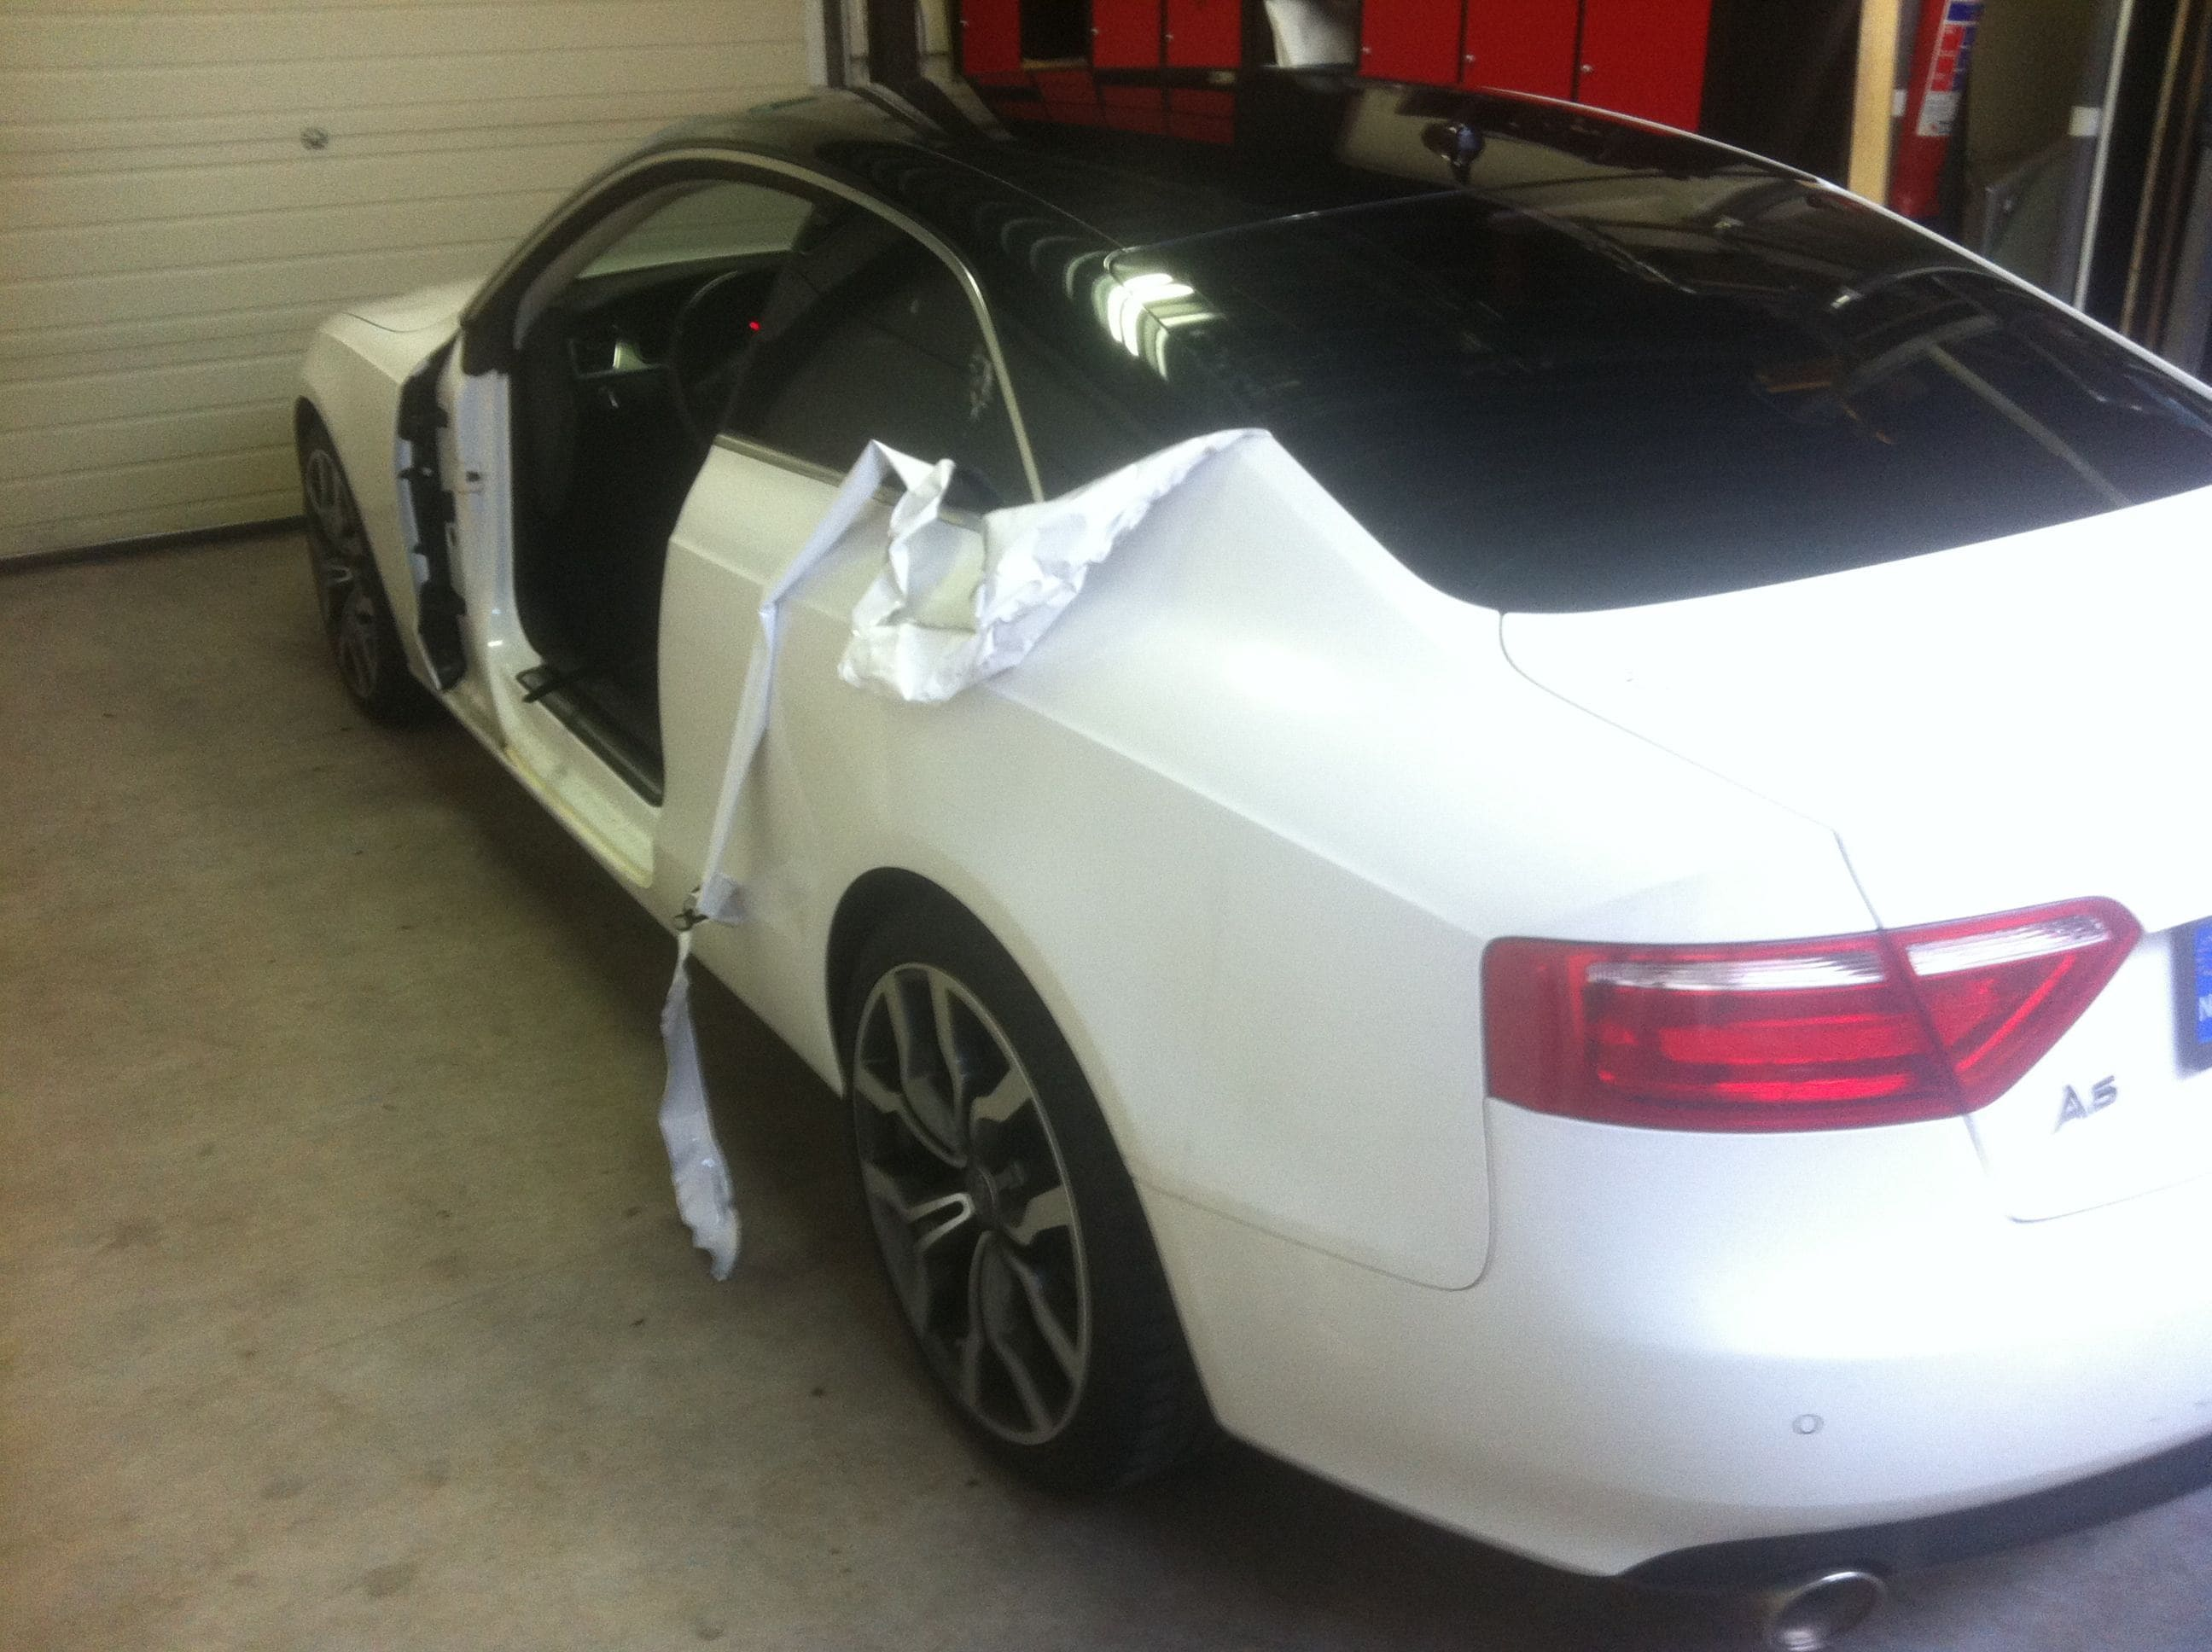 Audi A5 coupe met Metallic Witte Wrap, Carwrapping door Wrapmyride.nu Foto-nr:4667, ©2020